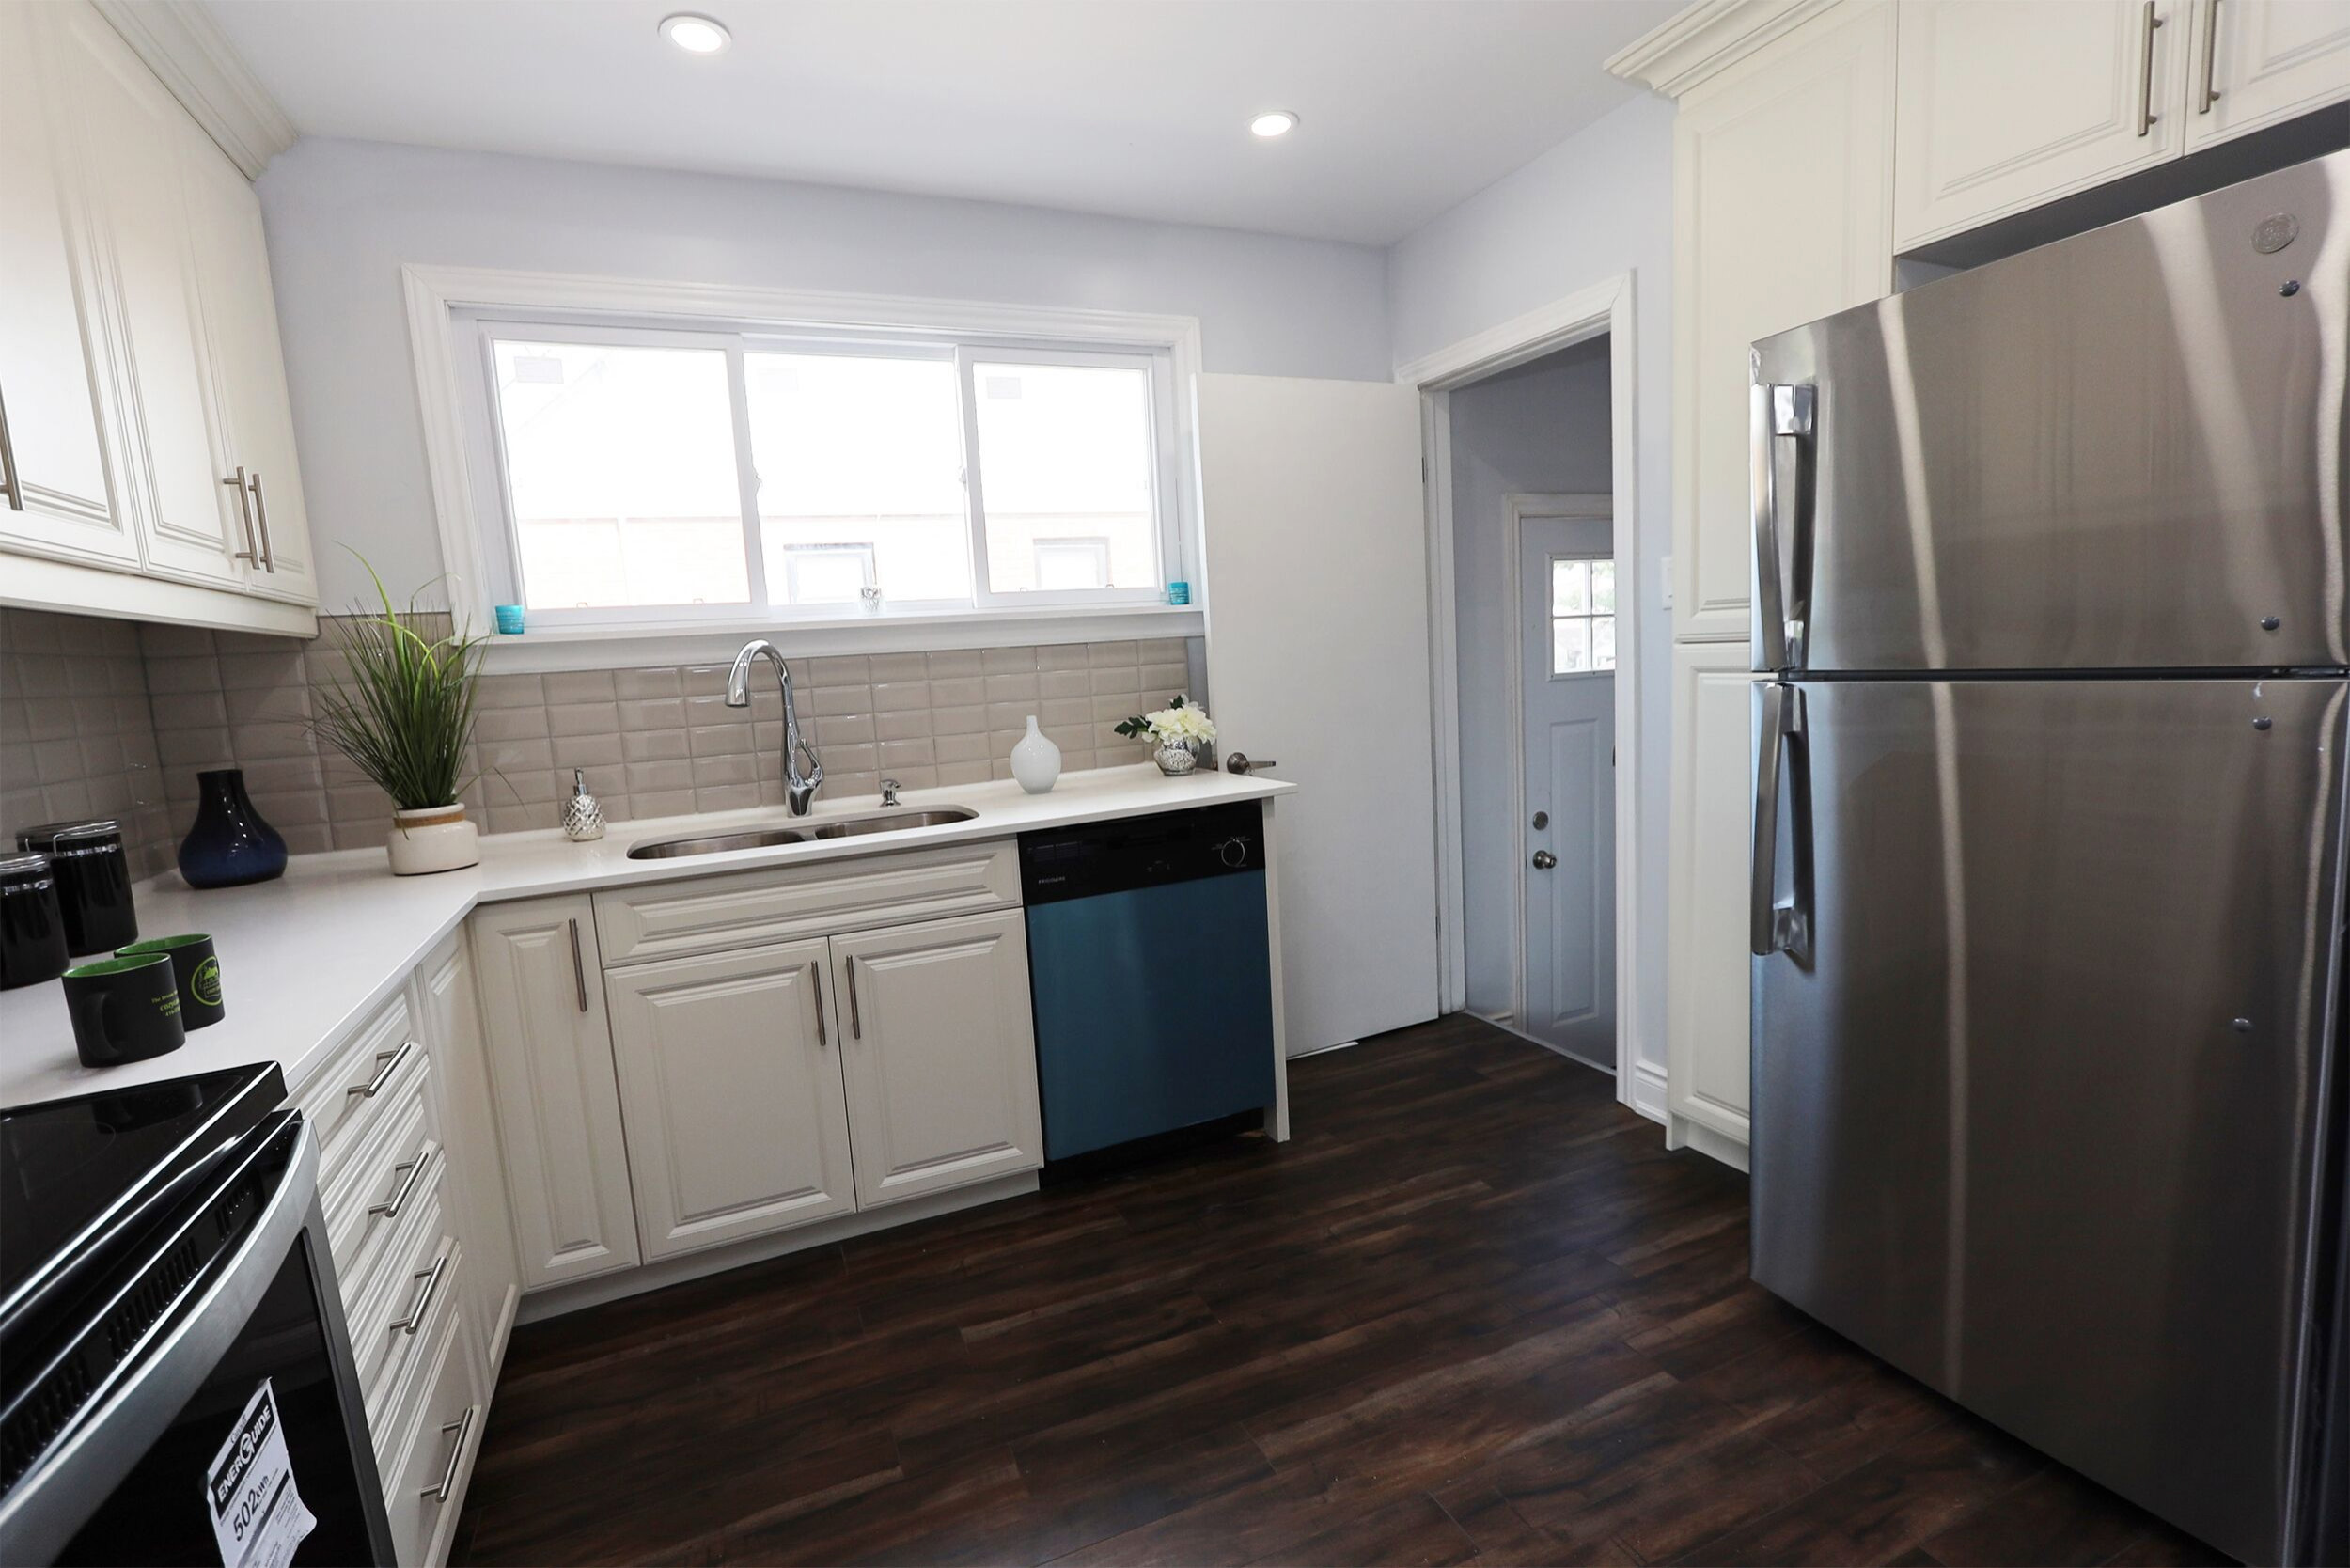 Redesigning & remodeling a Bungalow.